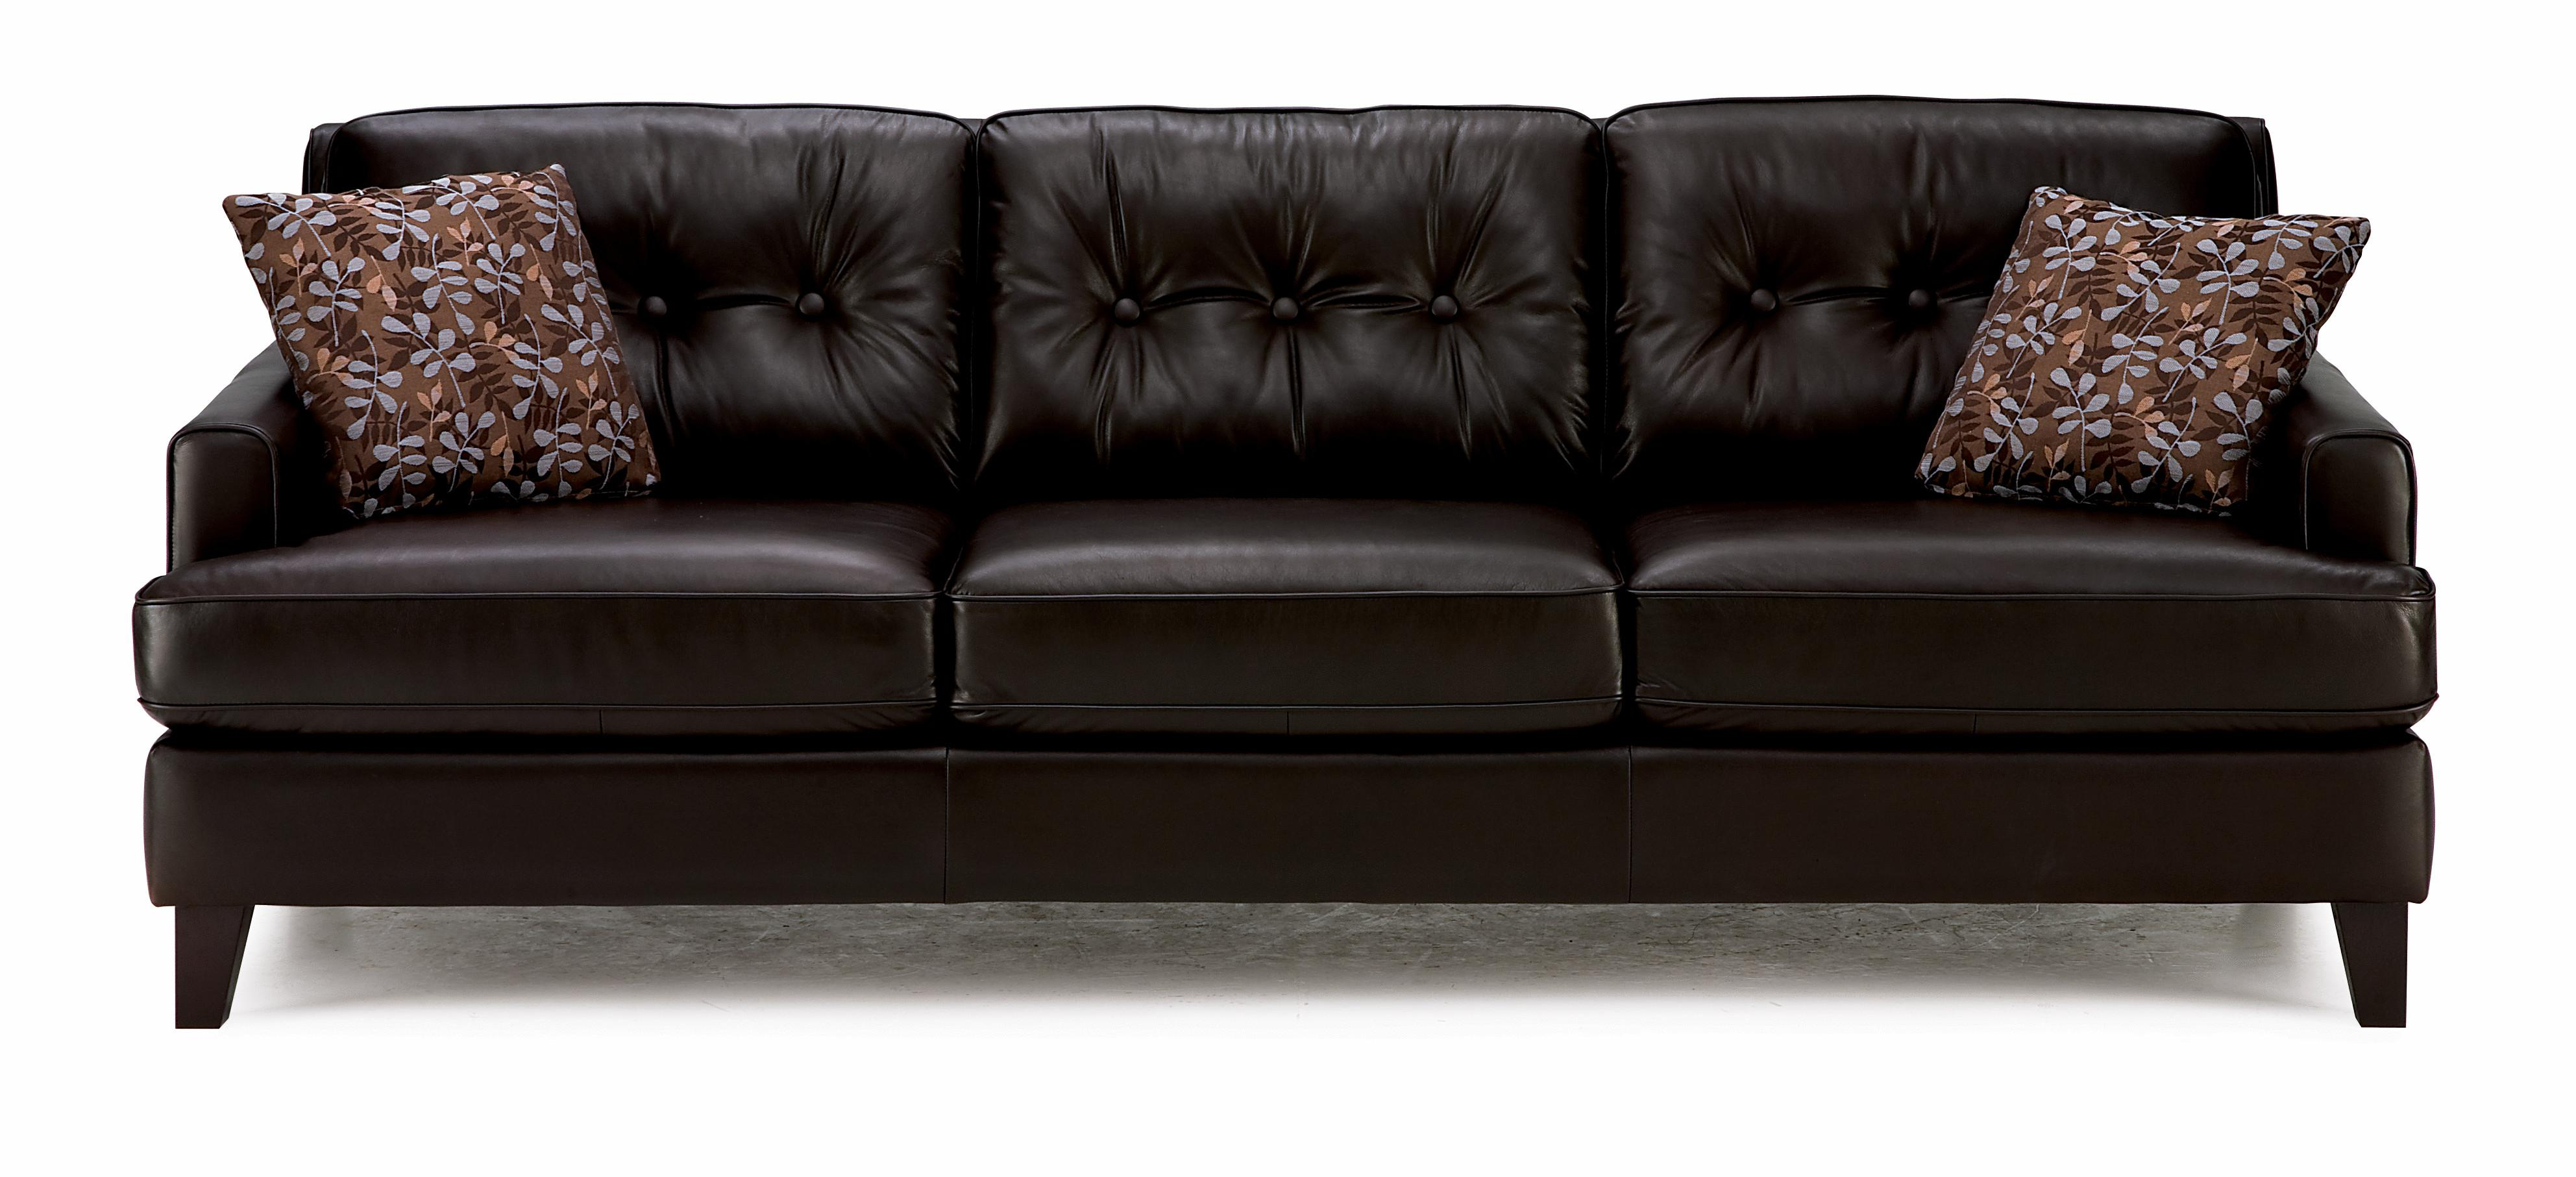 palliser stationary sofas where to donate sofa in singapore barbara transitional with tapered